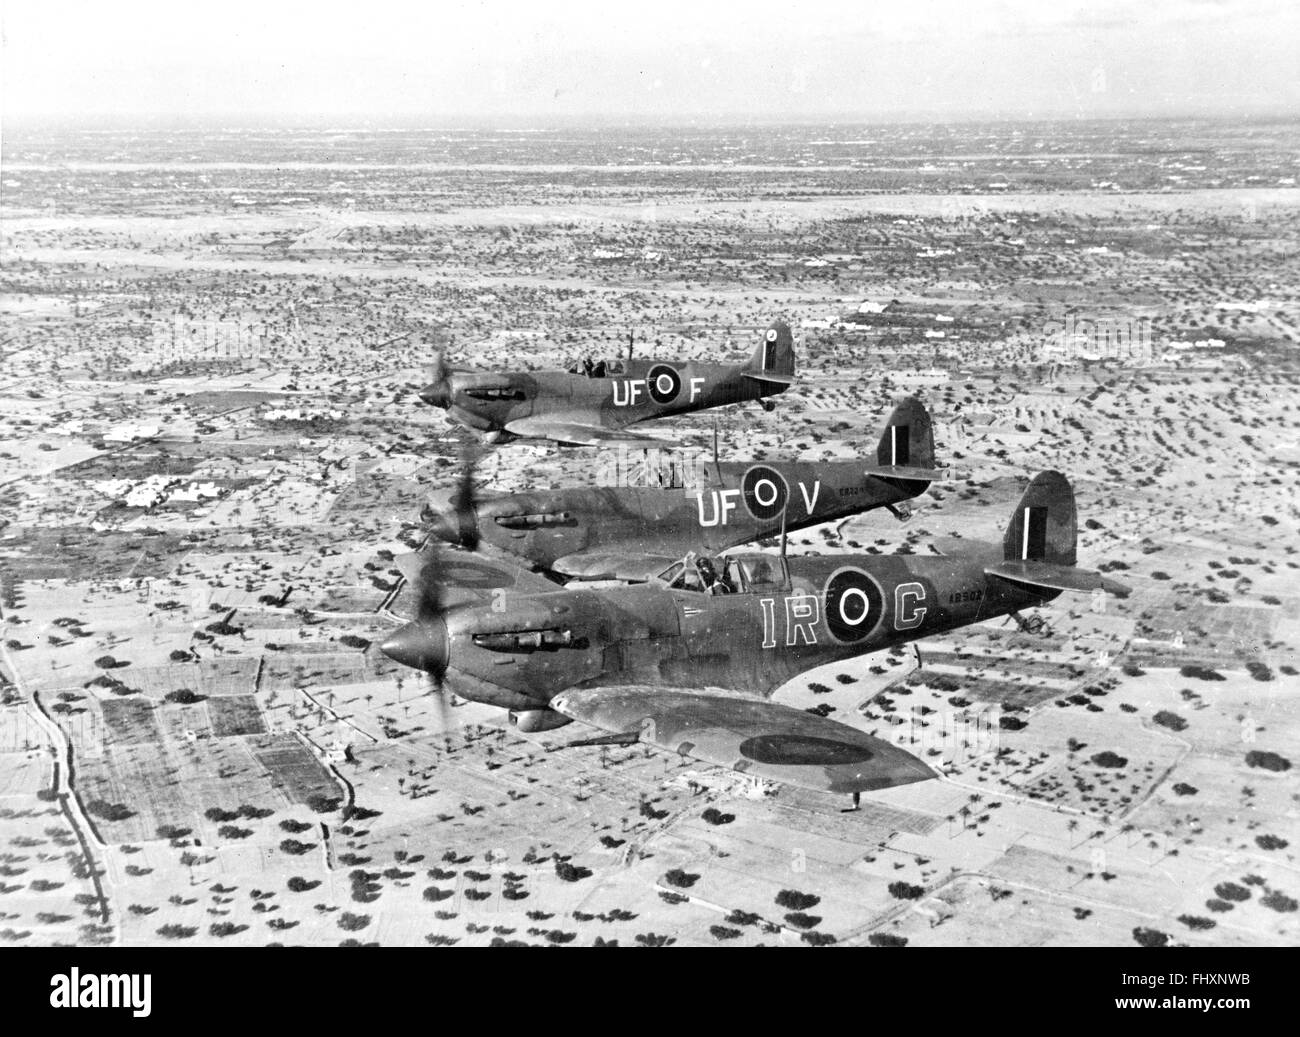 Spitfires on interception patrol over De Djerba Island, off Gabes, North Africa by Allied air forces - Stock Image